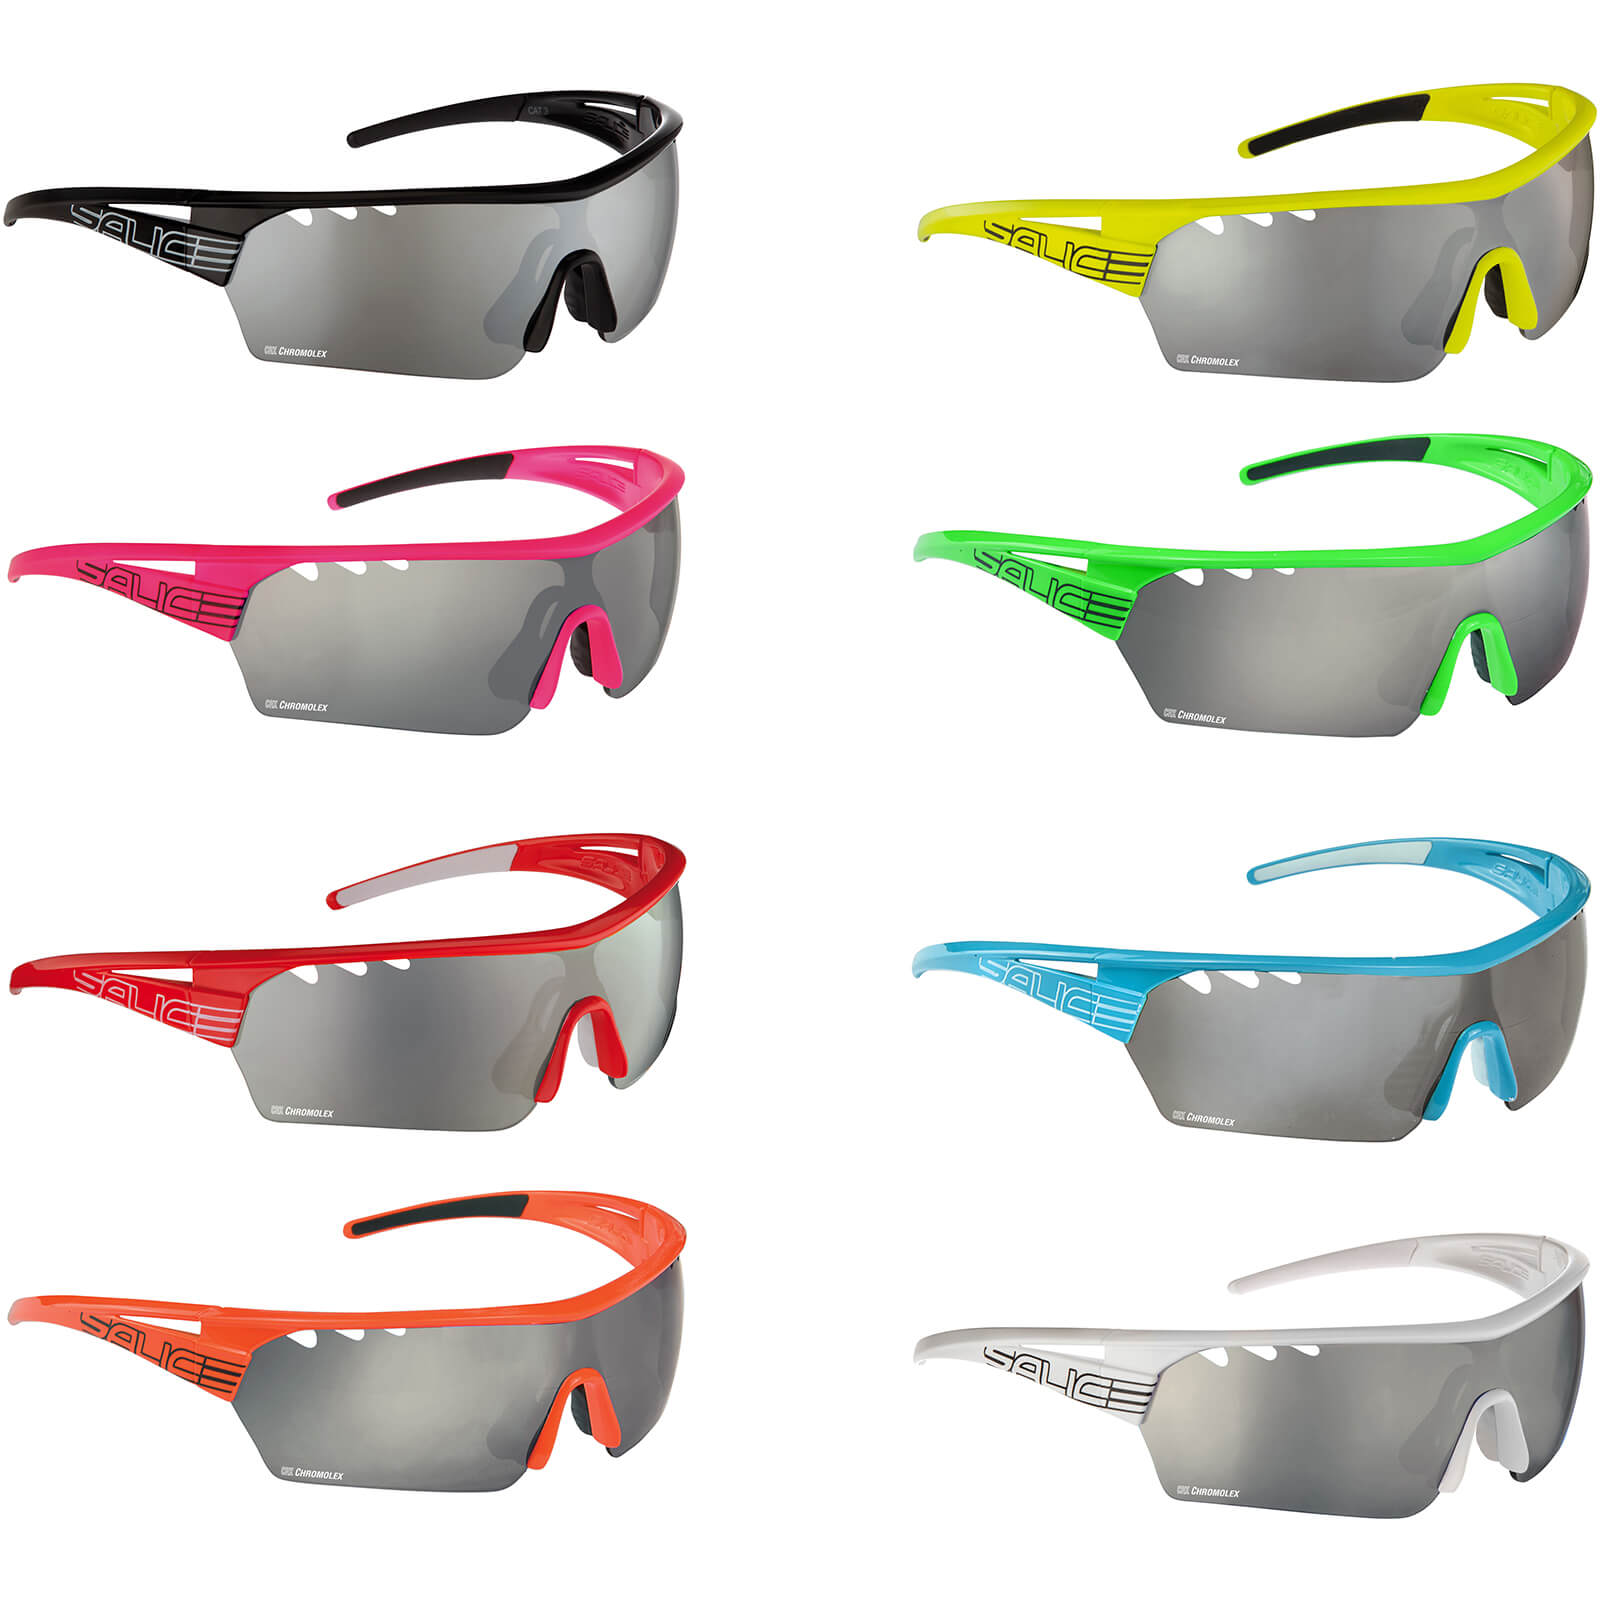 Salice 006 CRX Photochromic Sunglasses